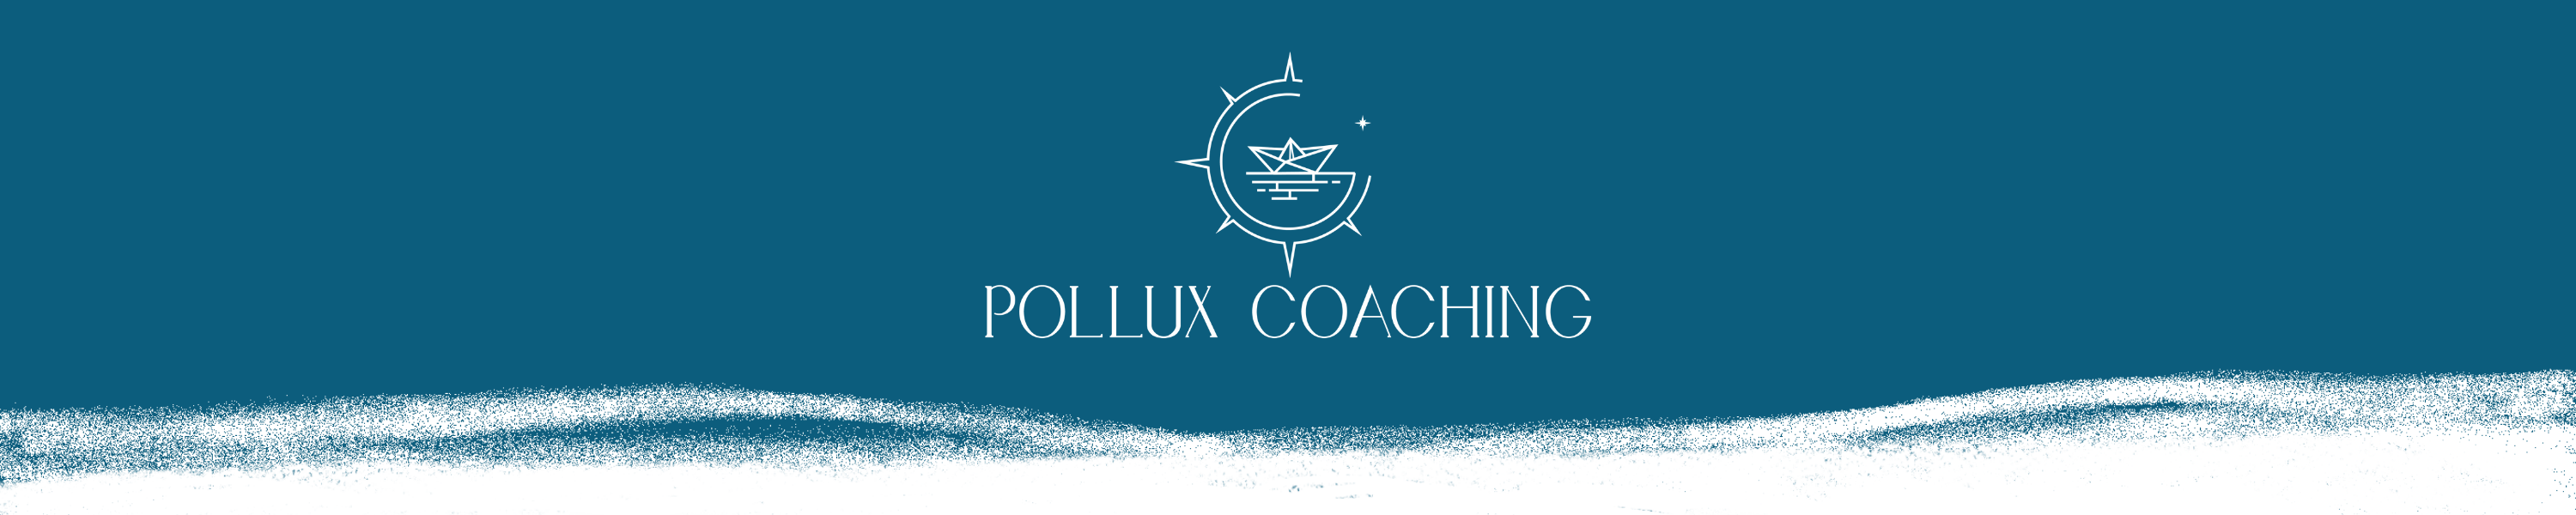 Pollux Coaching